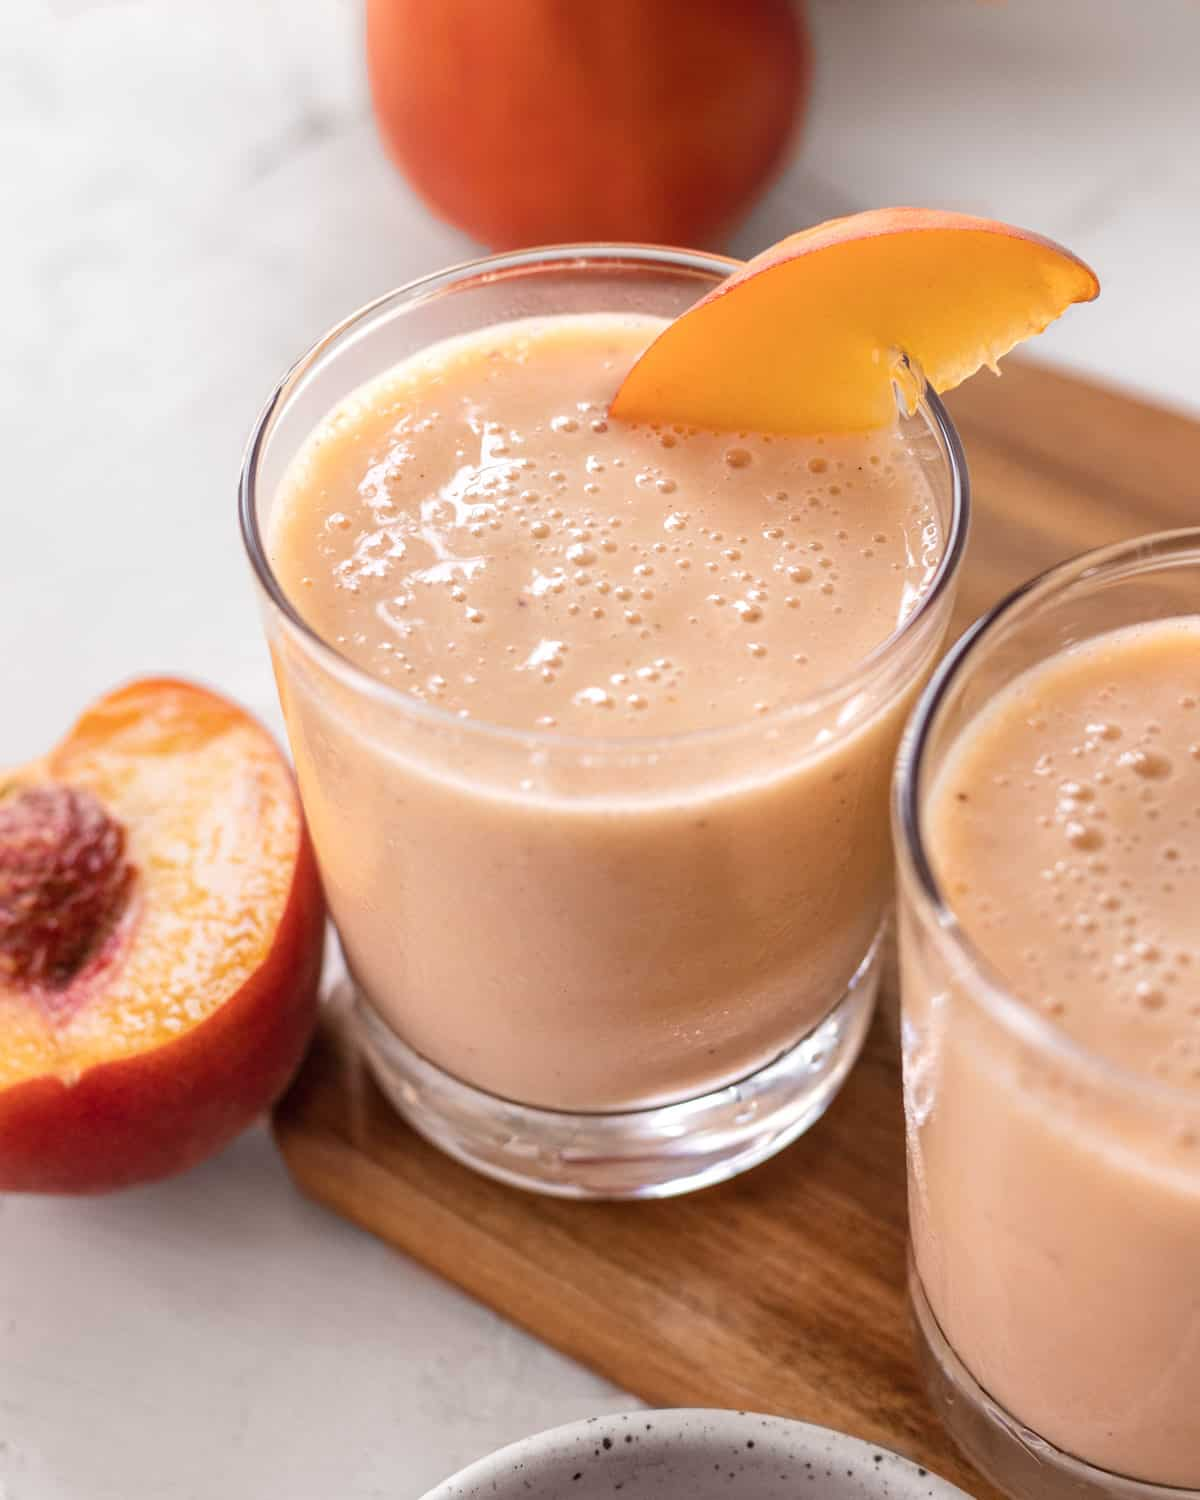 two glasses of banana peach smoothie with a cut open peach next to them.